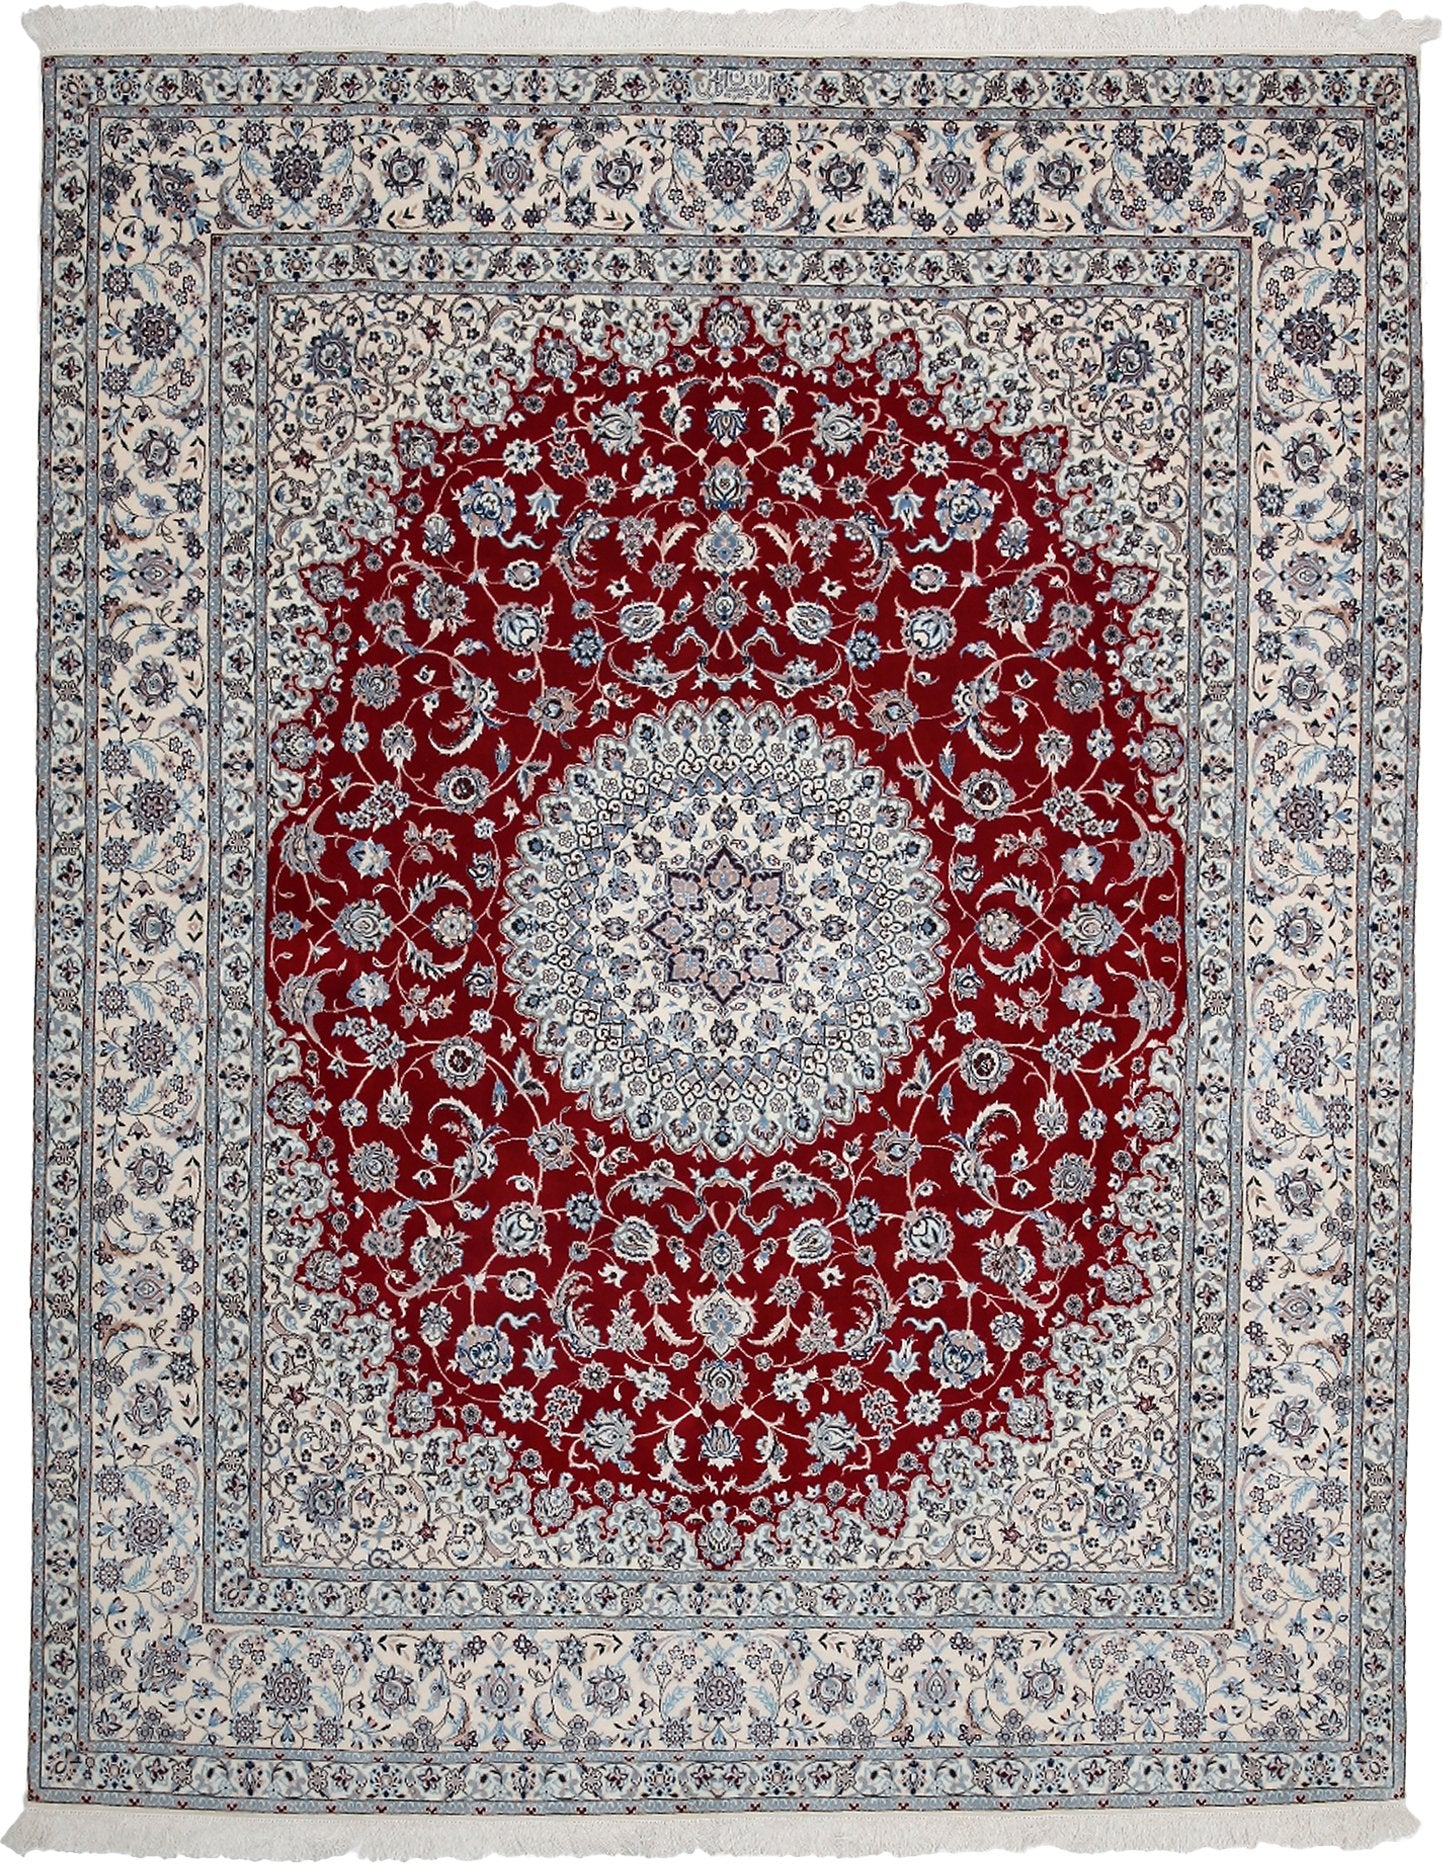 Persian Red Wool Area Rug 6 9 X 8 7 Lillian August